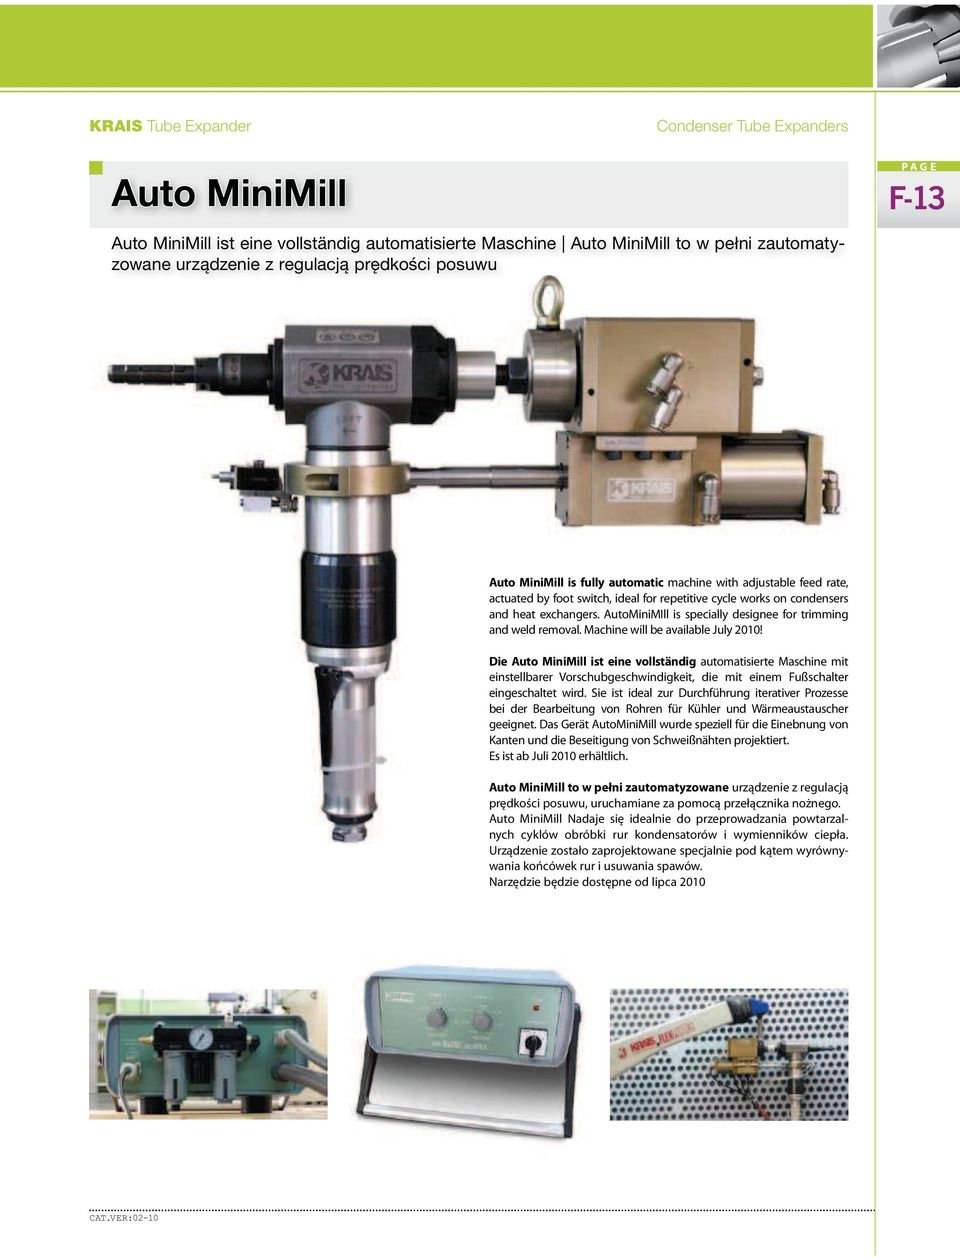 AutoMiniMIll is specially designee for trimg and weld removal. Machine will be available July 2010!